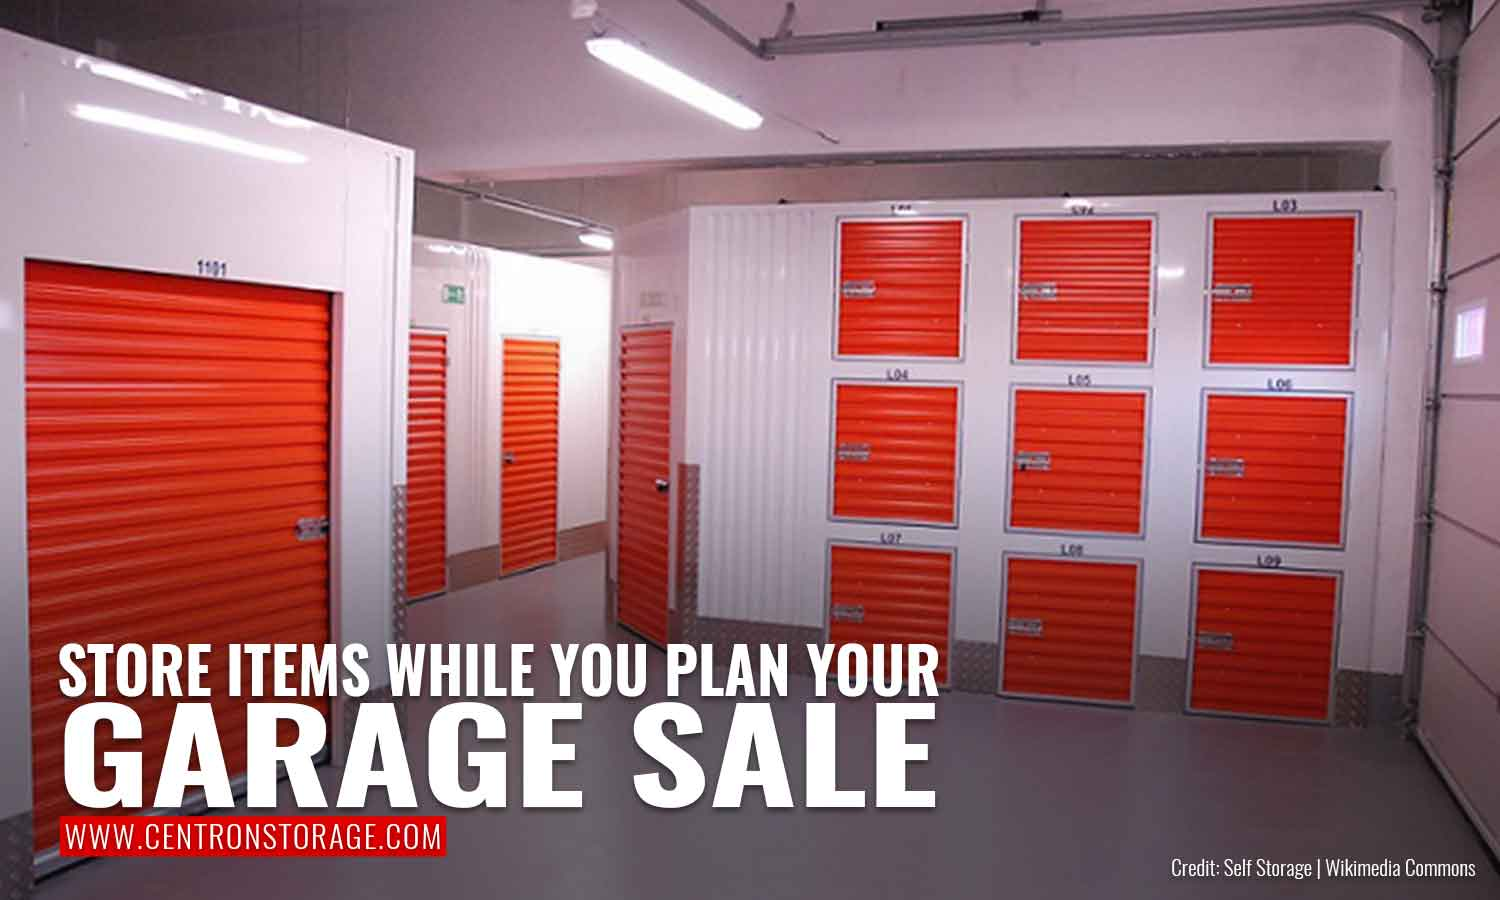 Store items while you plan your garage sale